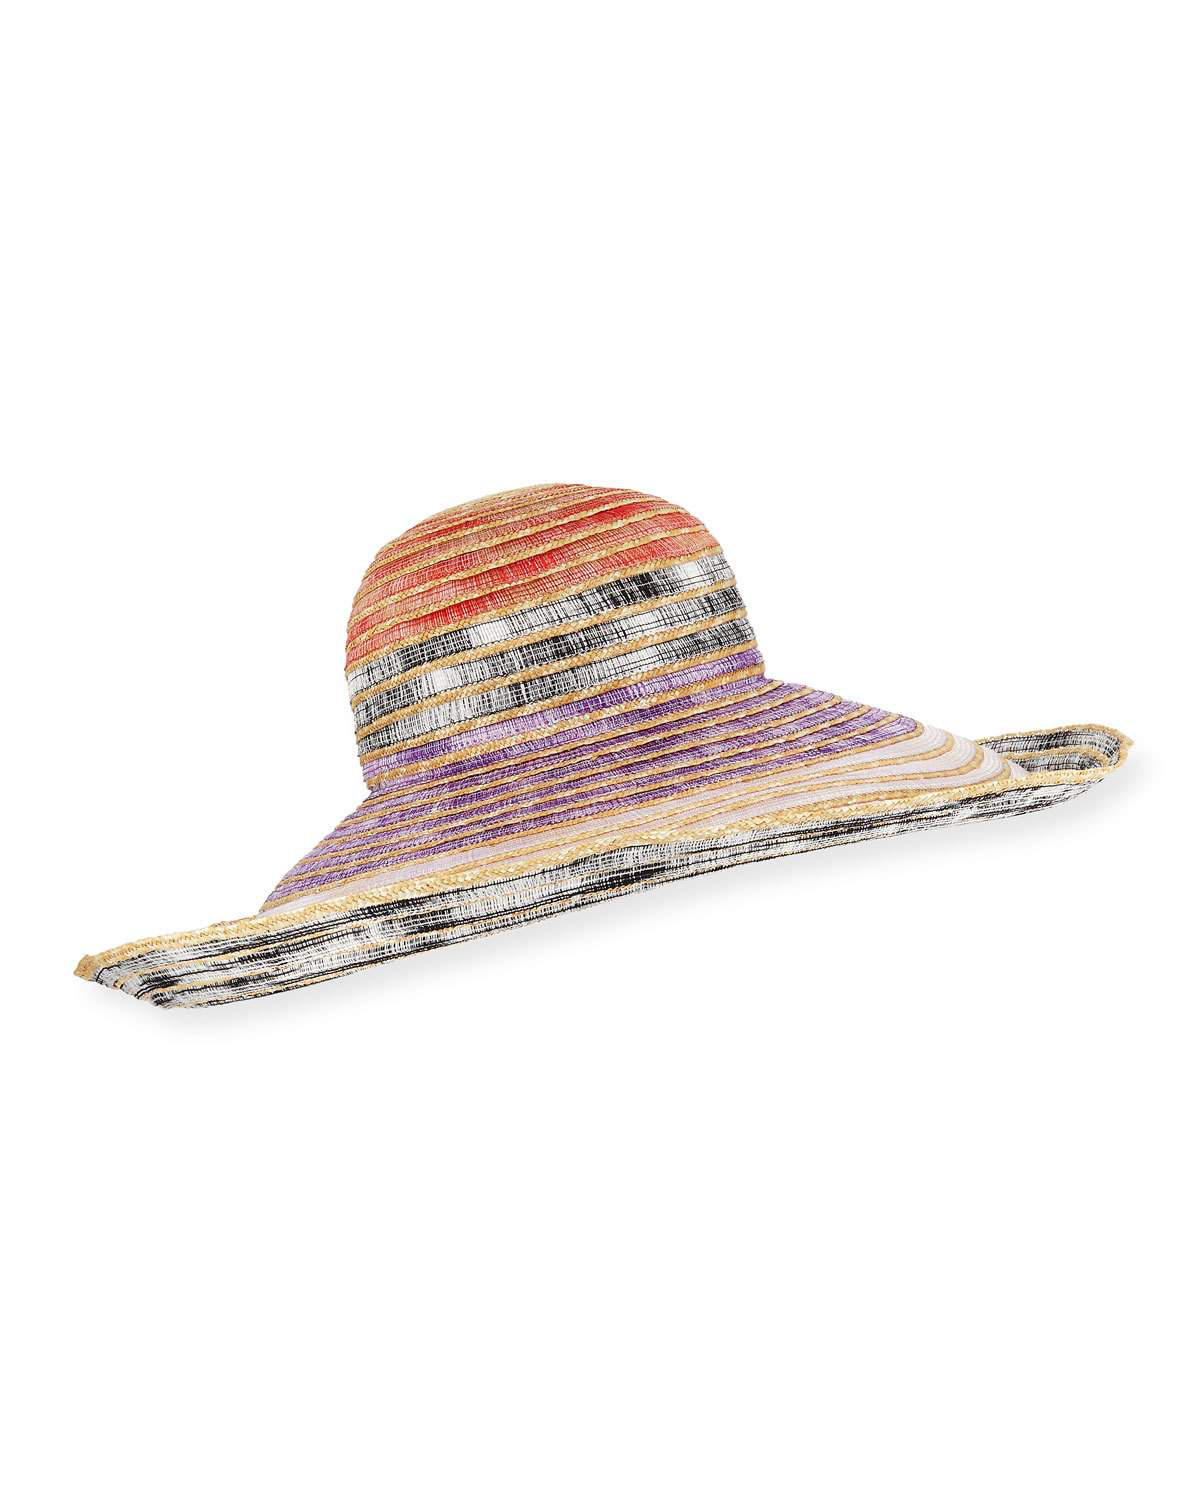 Missoni Woven Straw Sun Hat In Pink Multi  7fbc24fb5a29